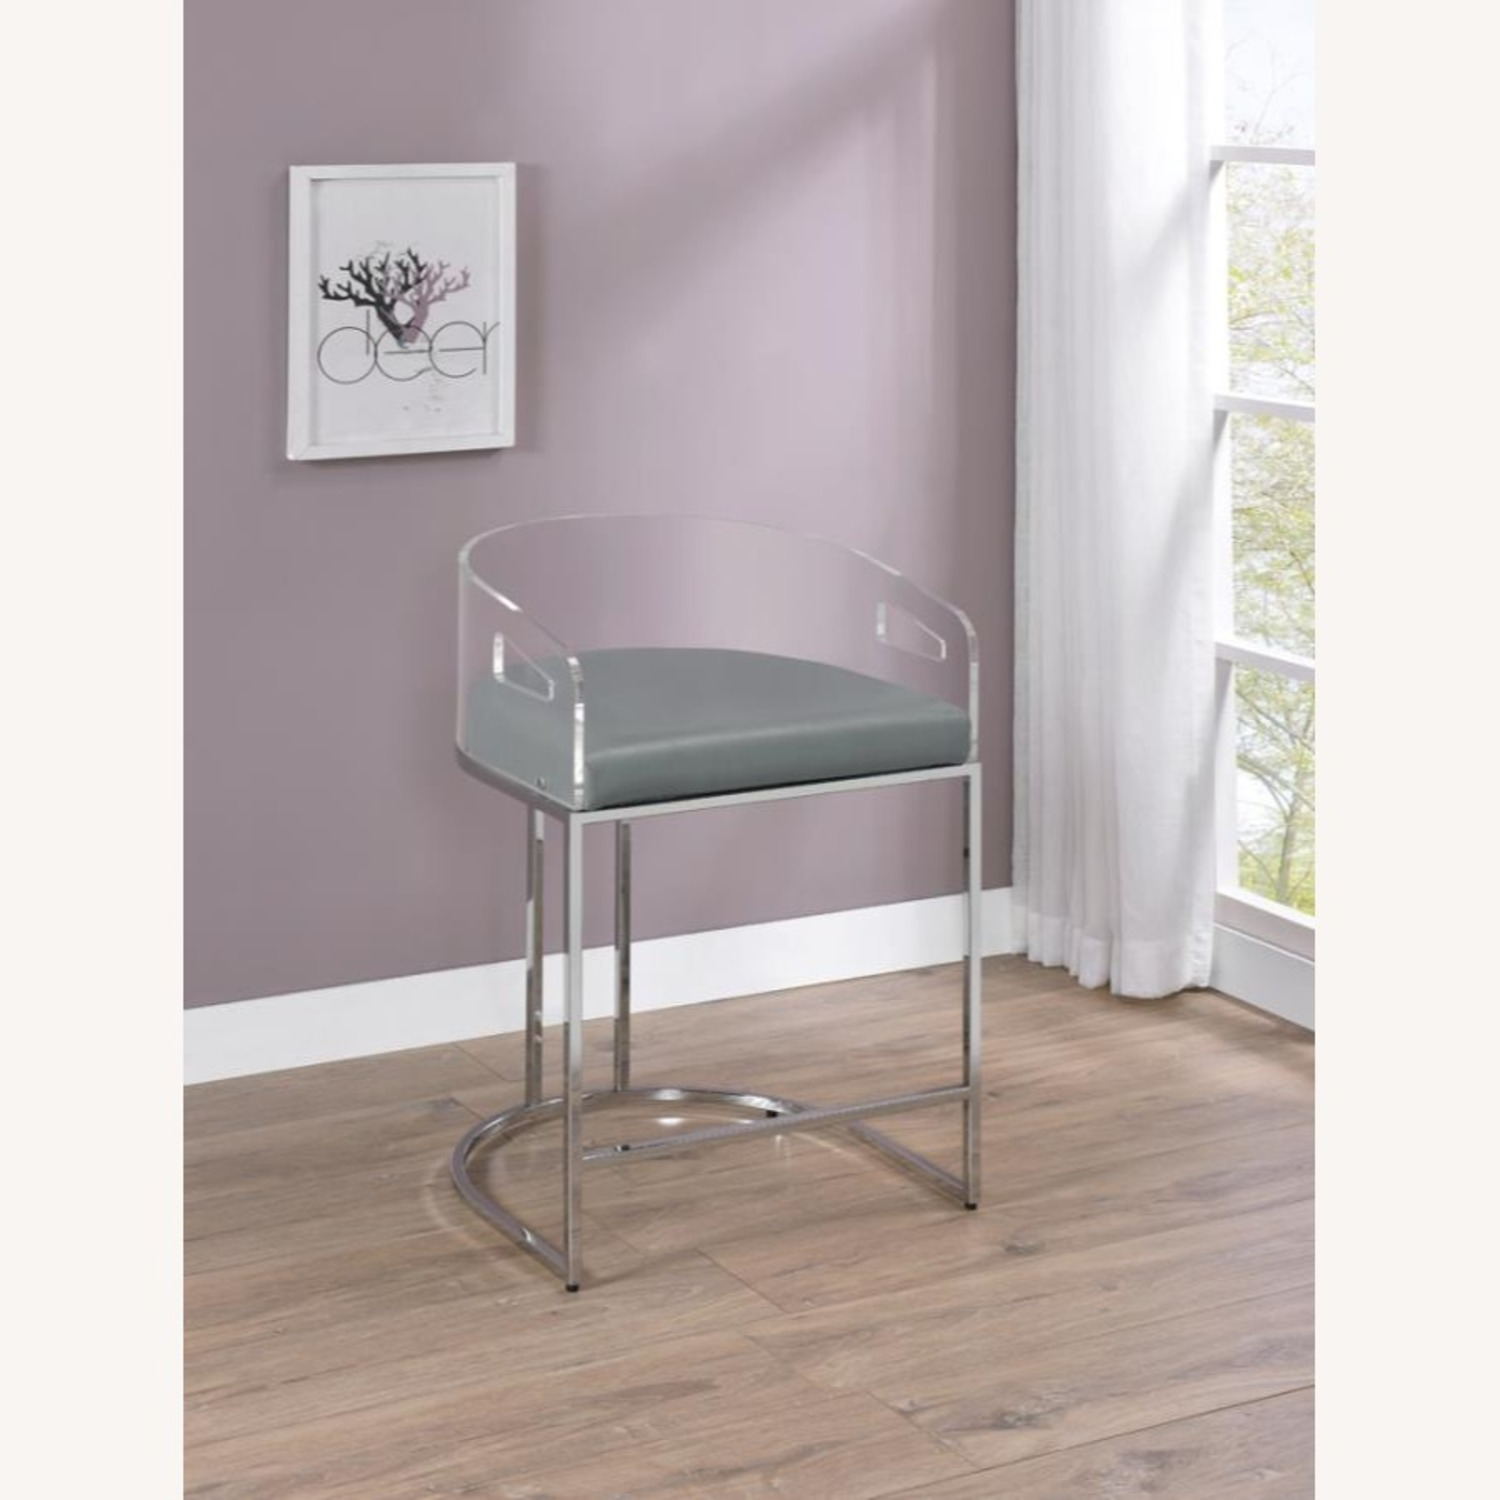 Stool In Grey Leather W/ Clear Acrylic Back - image-6